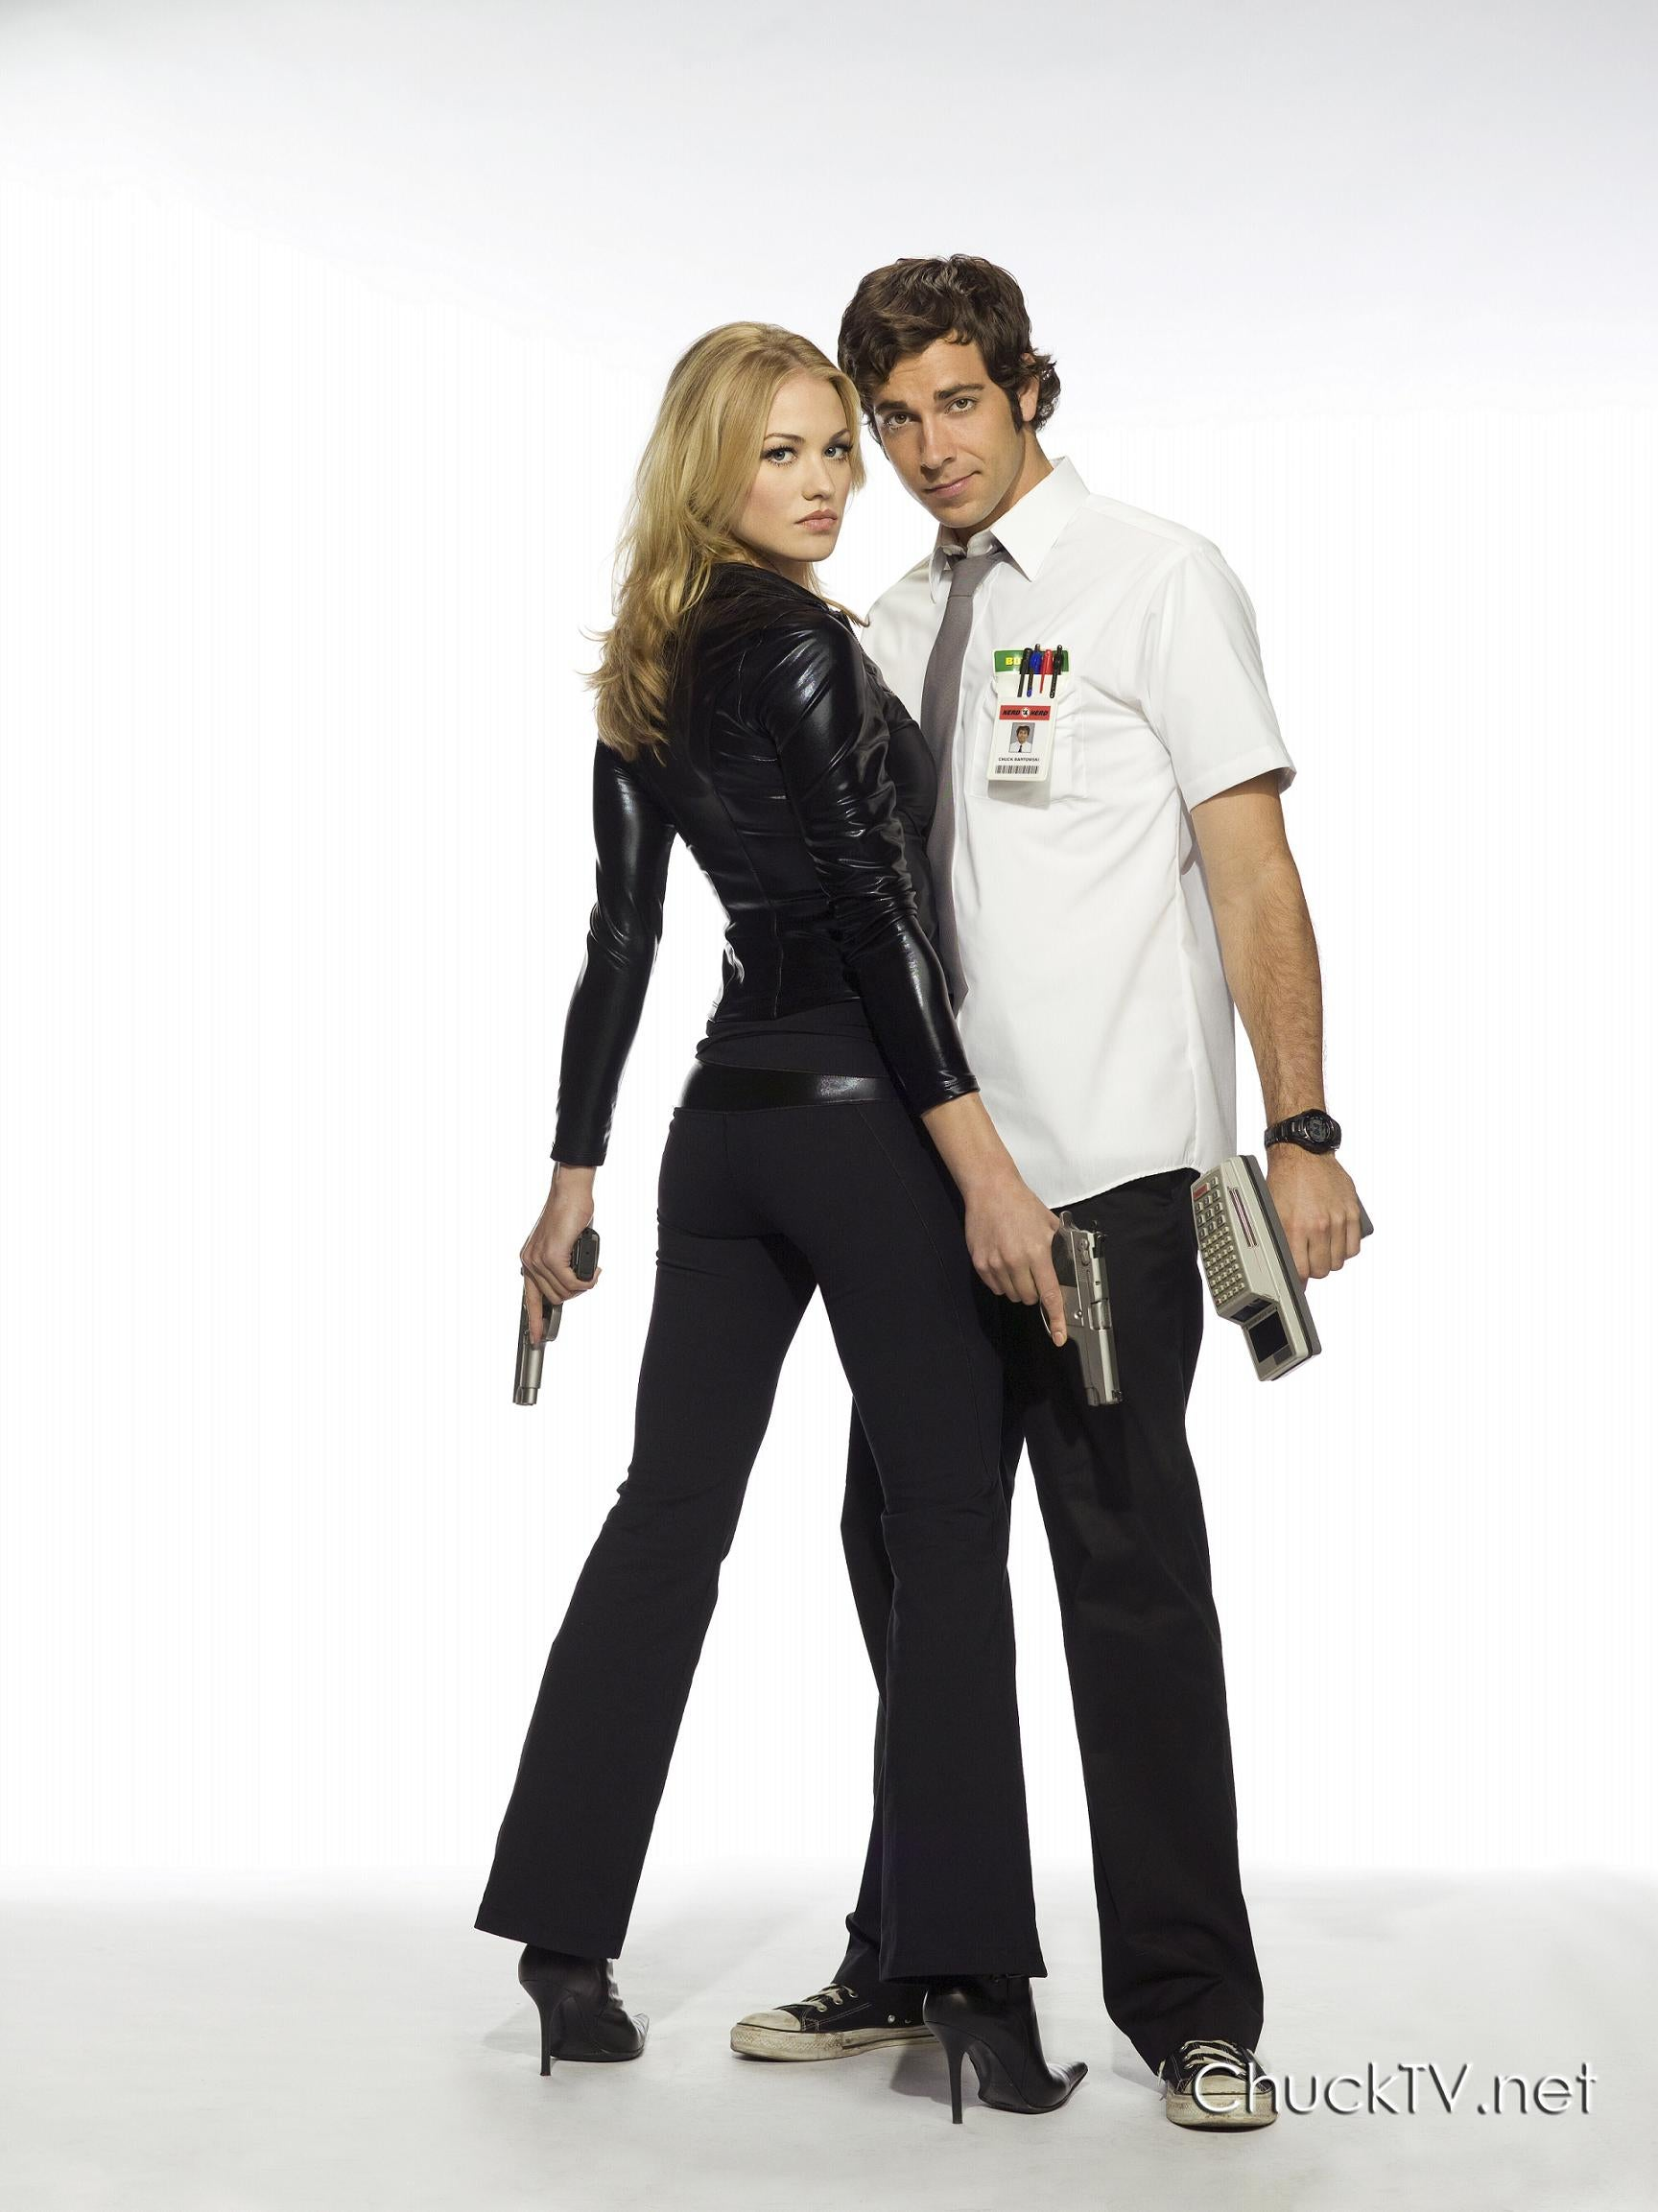 The top ten things chuck did right voltagebd Choice Image